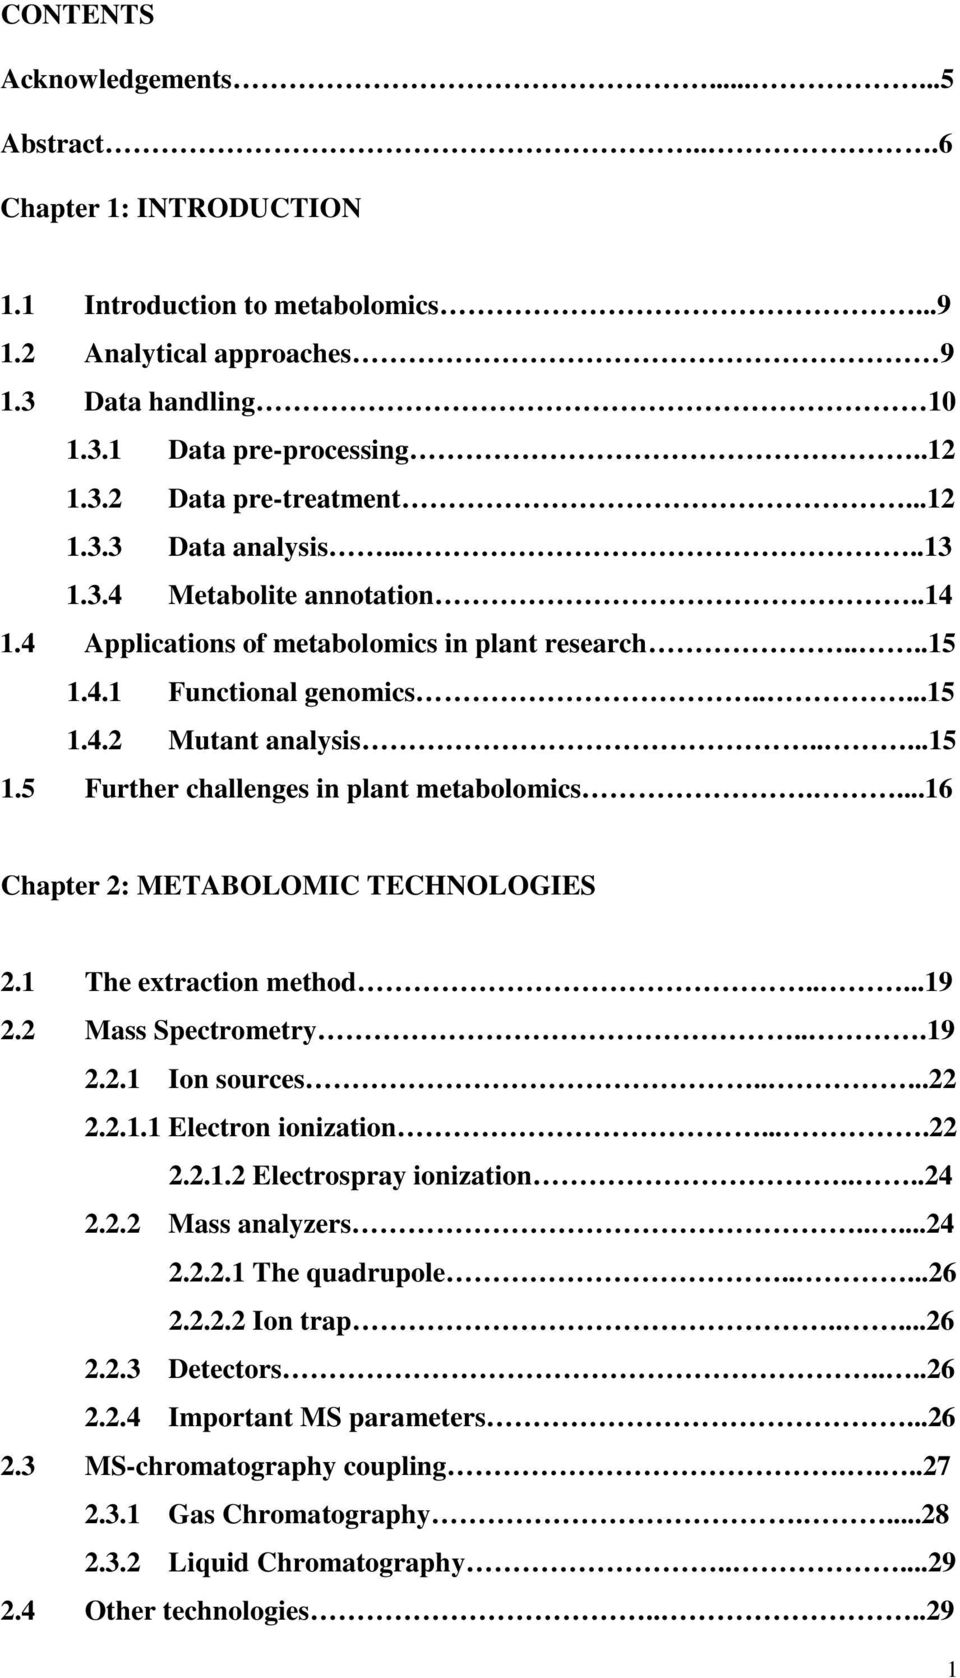 ...16 Chapter 2: METABOLOMIC TECHNOLOGIES 2.1 The extraction method.....19 2.2 Mass Spectrometry...19 2.2.1 Ion sources.....22 2.2.1.1 Electron ionization....22 2.2.1.2 Electrospray ionization....24 2.